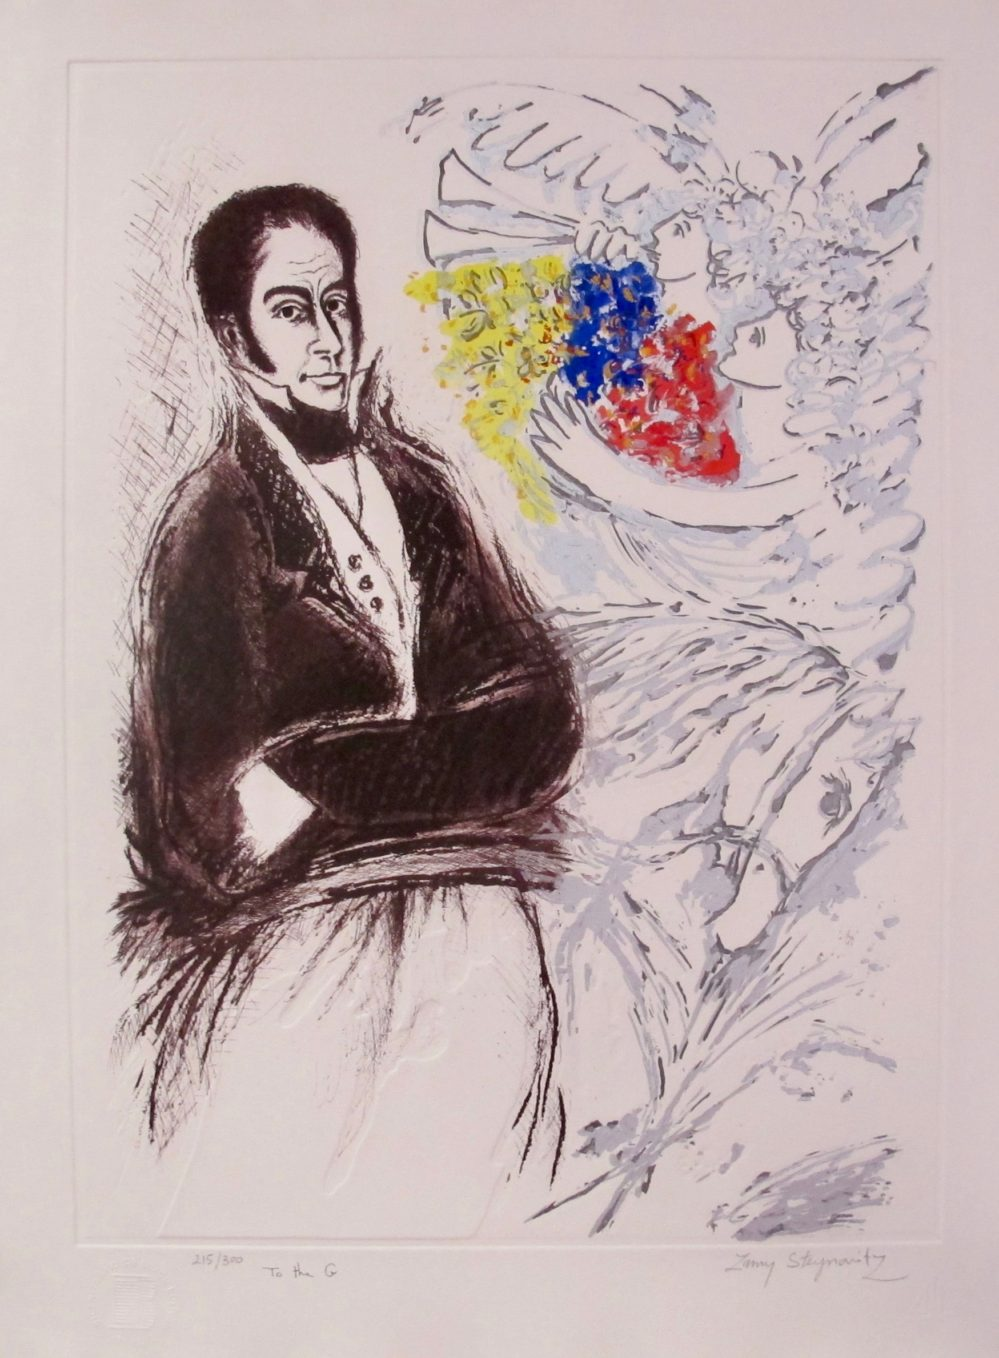 ZAMY STEYNOVITZ Bicentennial of Simon Bolivar Hand Signed Embossed Ltd Edition Lithograph